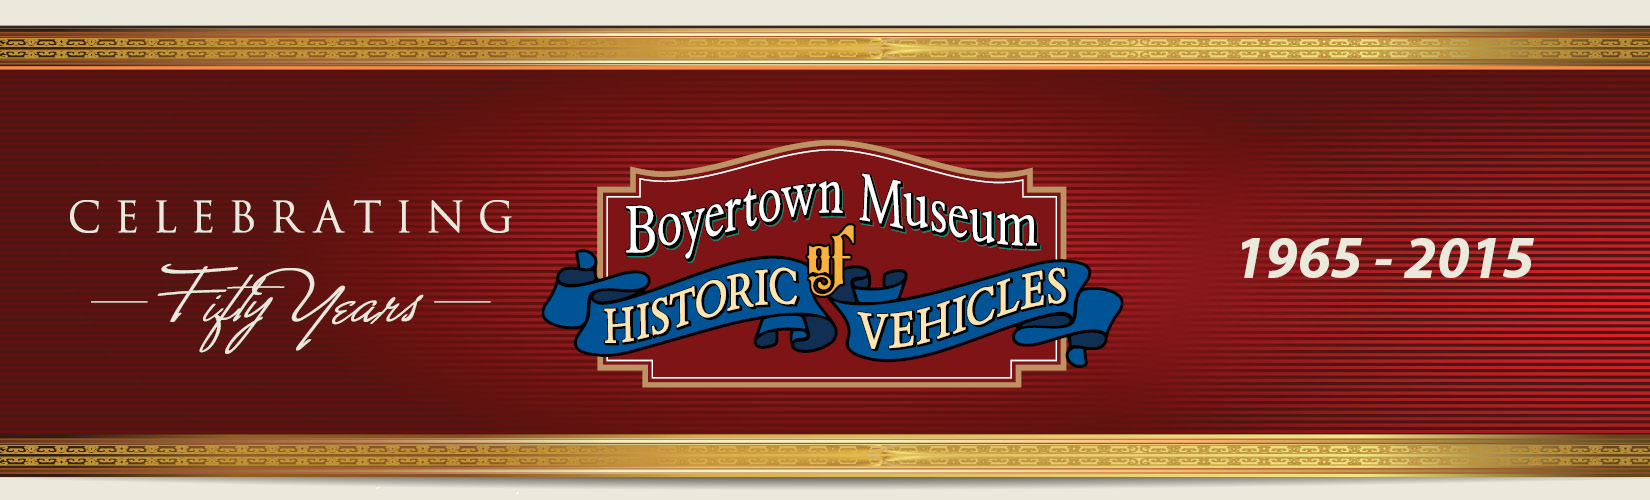 Boyertown Museum |Historic Vehicles | Golden Anniversary